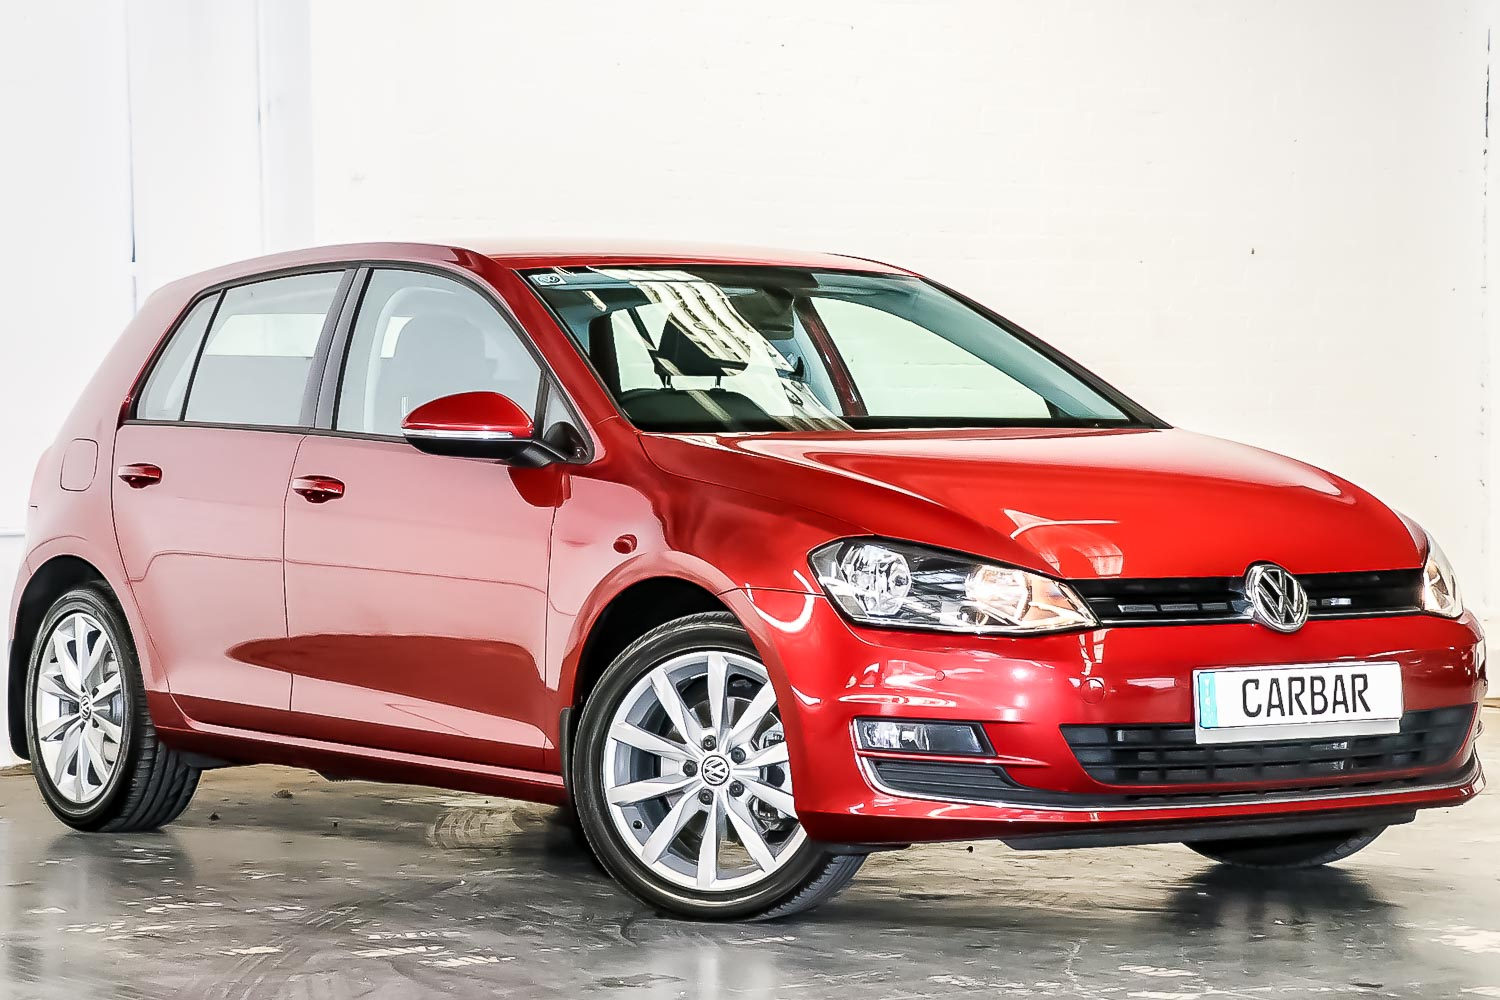 Carbar-2015-Volkswagen-Golf-179020181008-124020.jpg